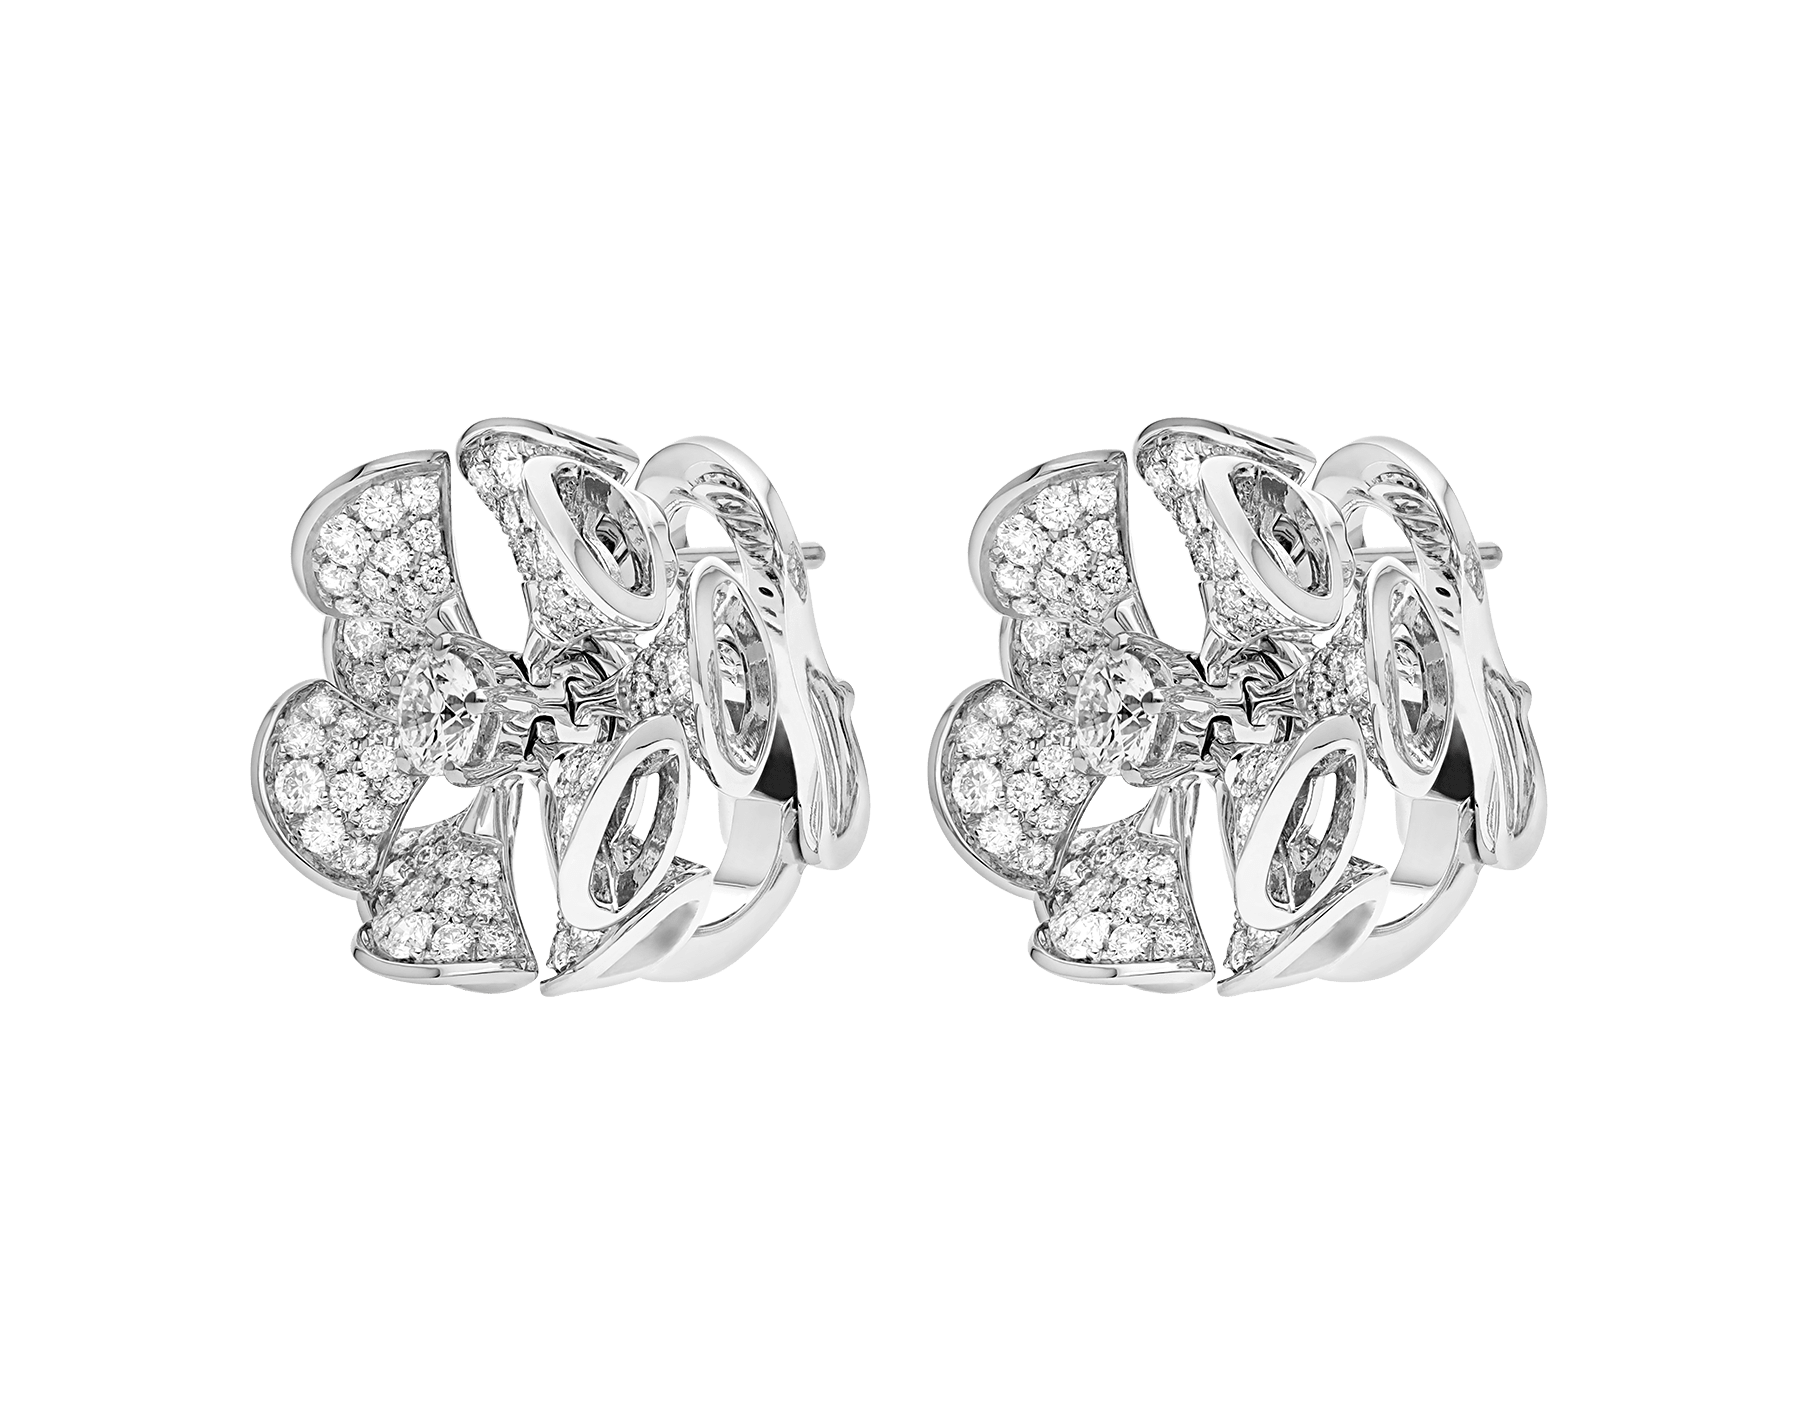 DIVAS' DREAM earrings in 18 kt white gold set with a central diamond and full pavé diamonds. 350785 image 2